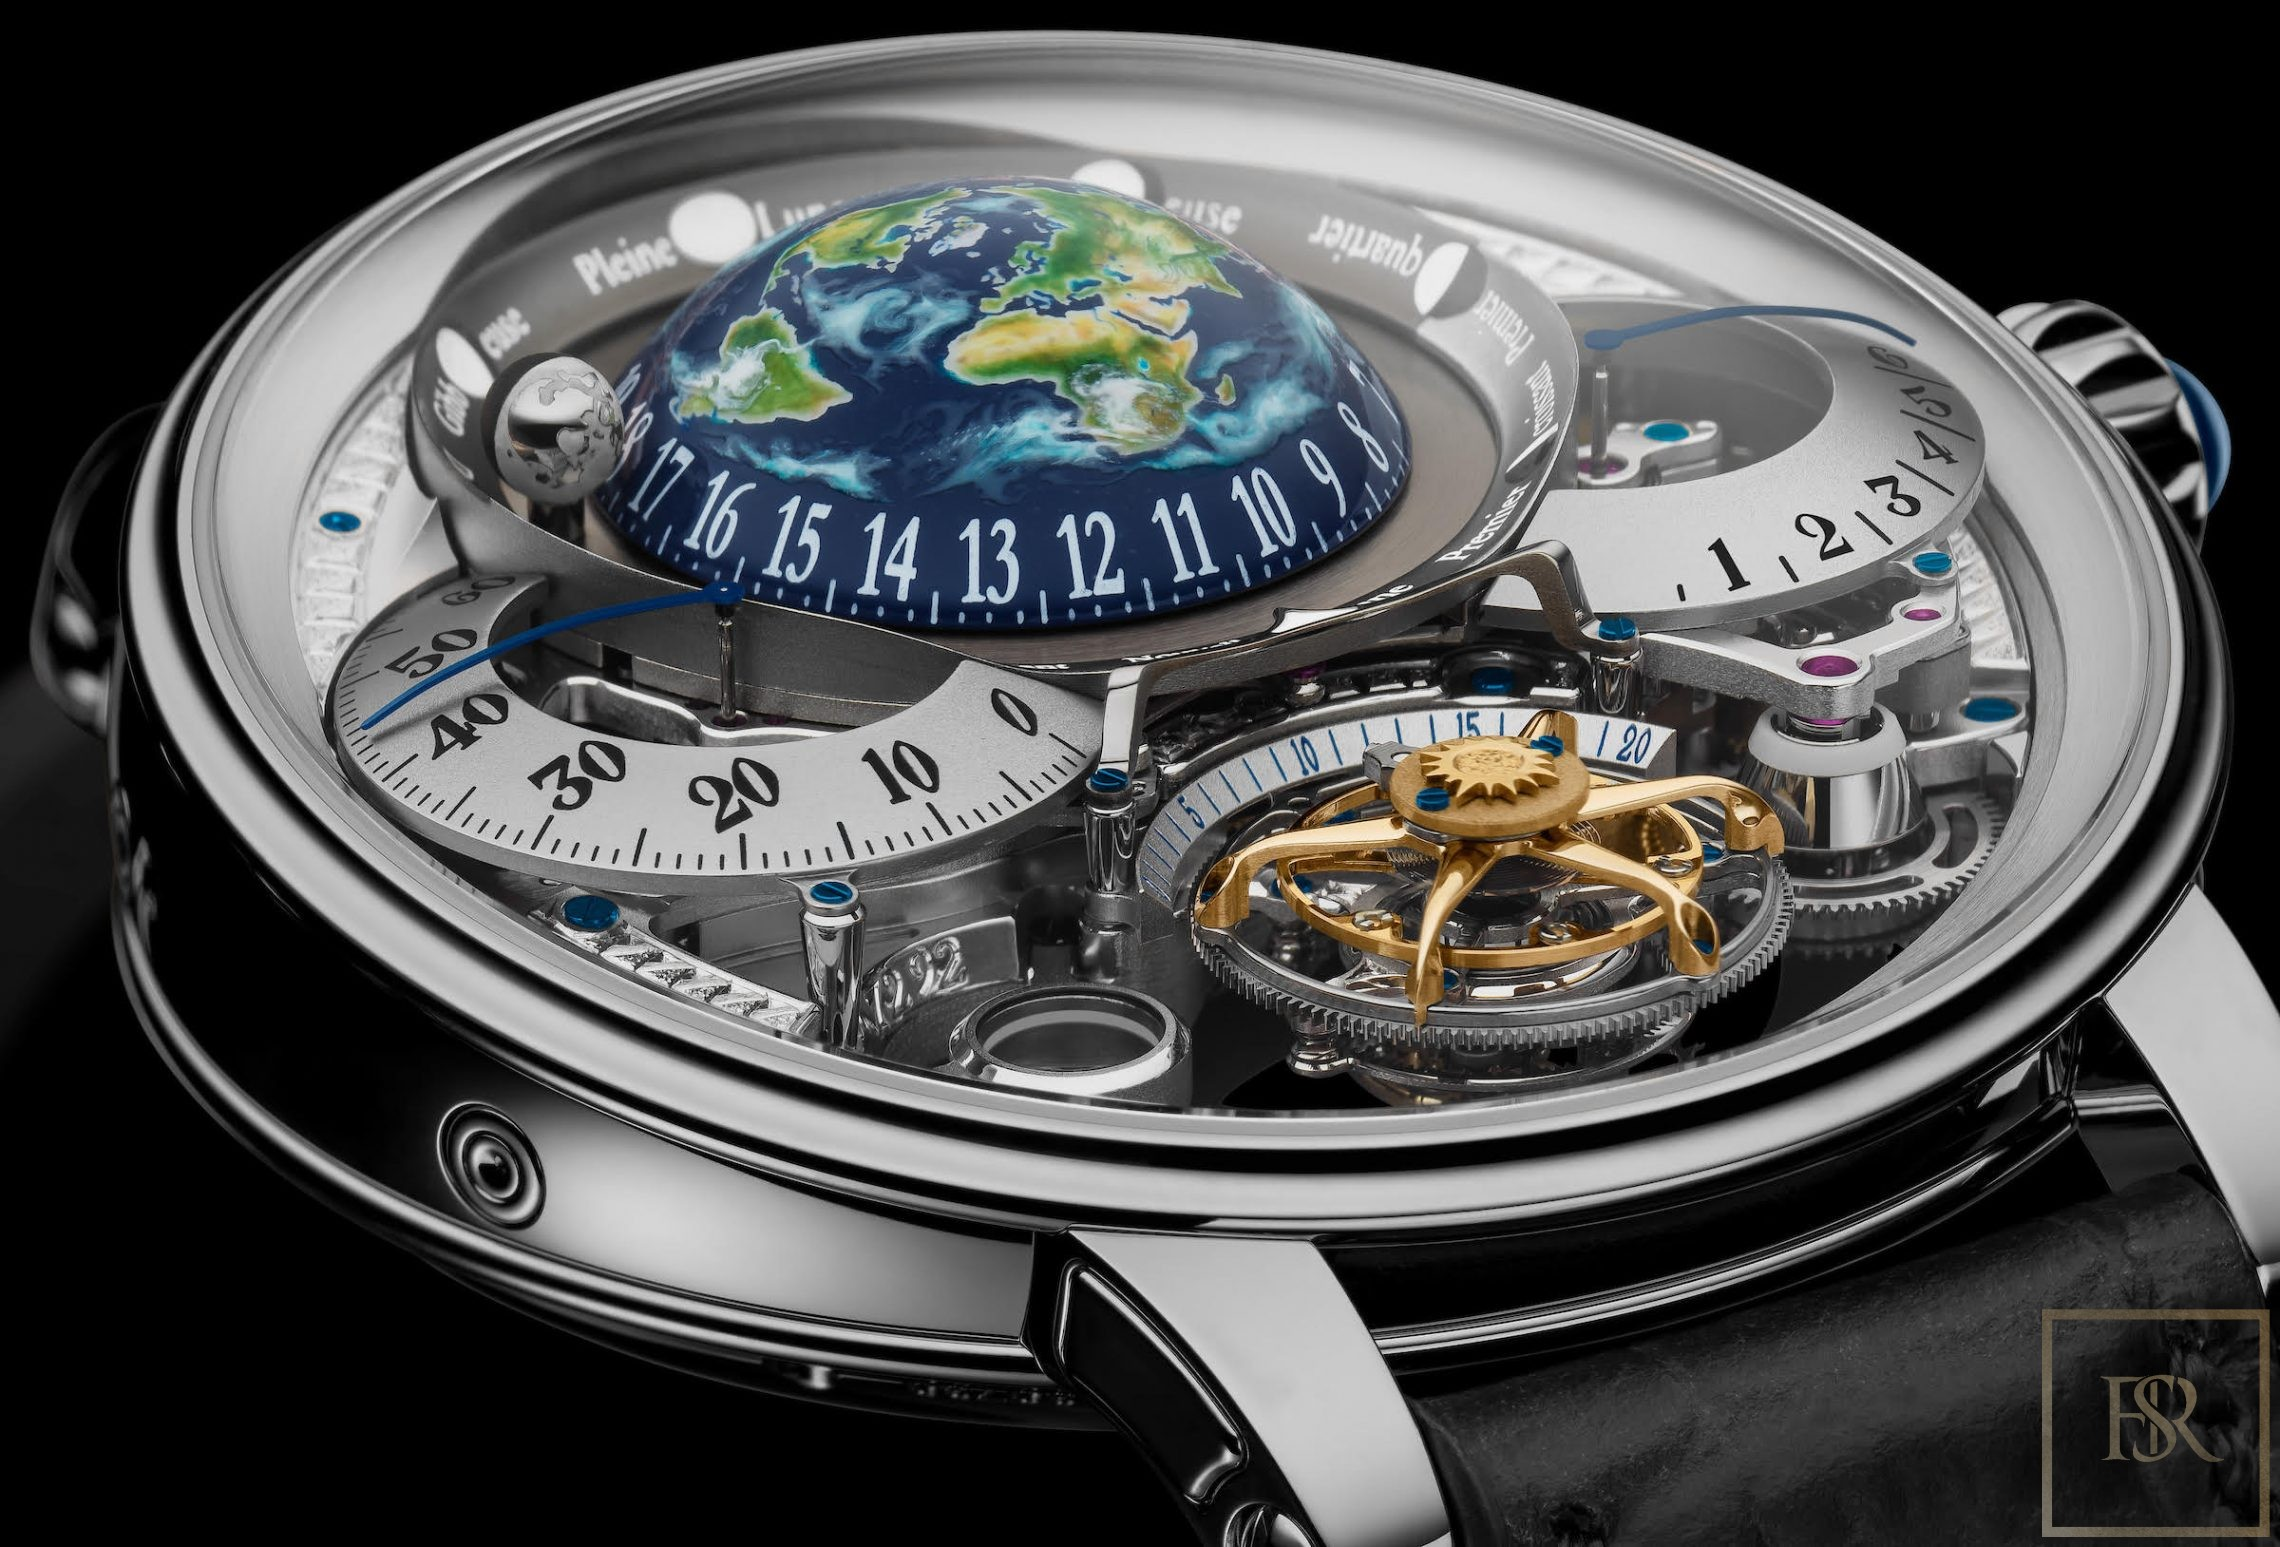 Watch Récital 22 Grand Récital - BOVET 1822 for sale For Super Rich